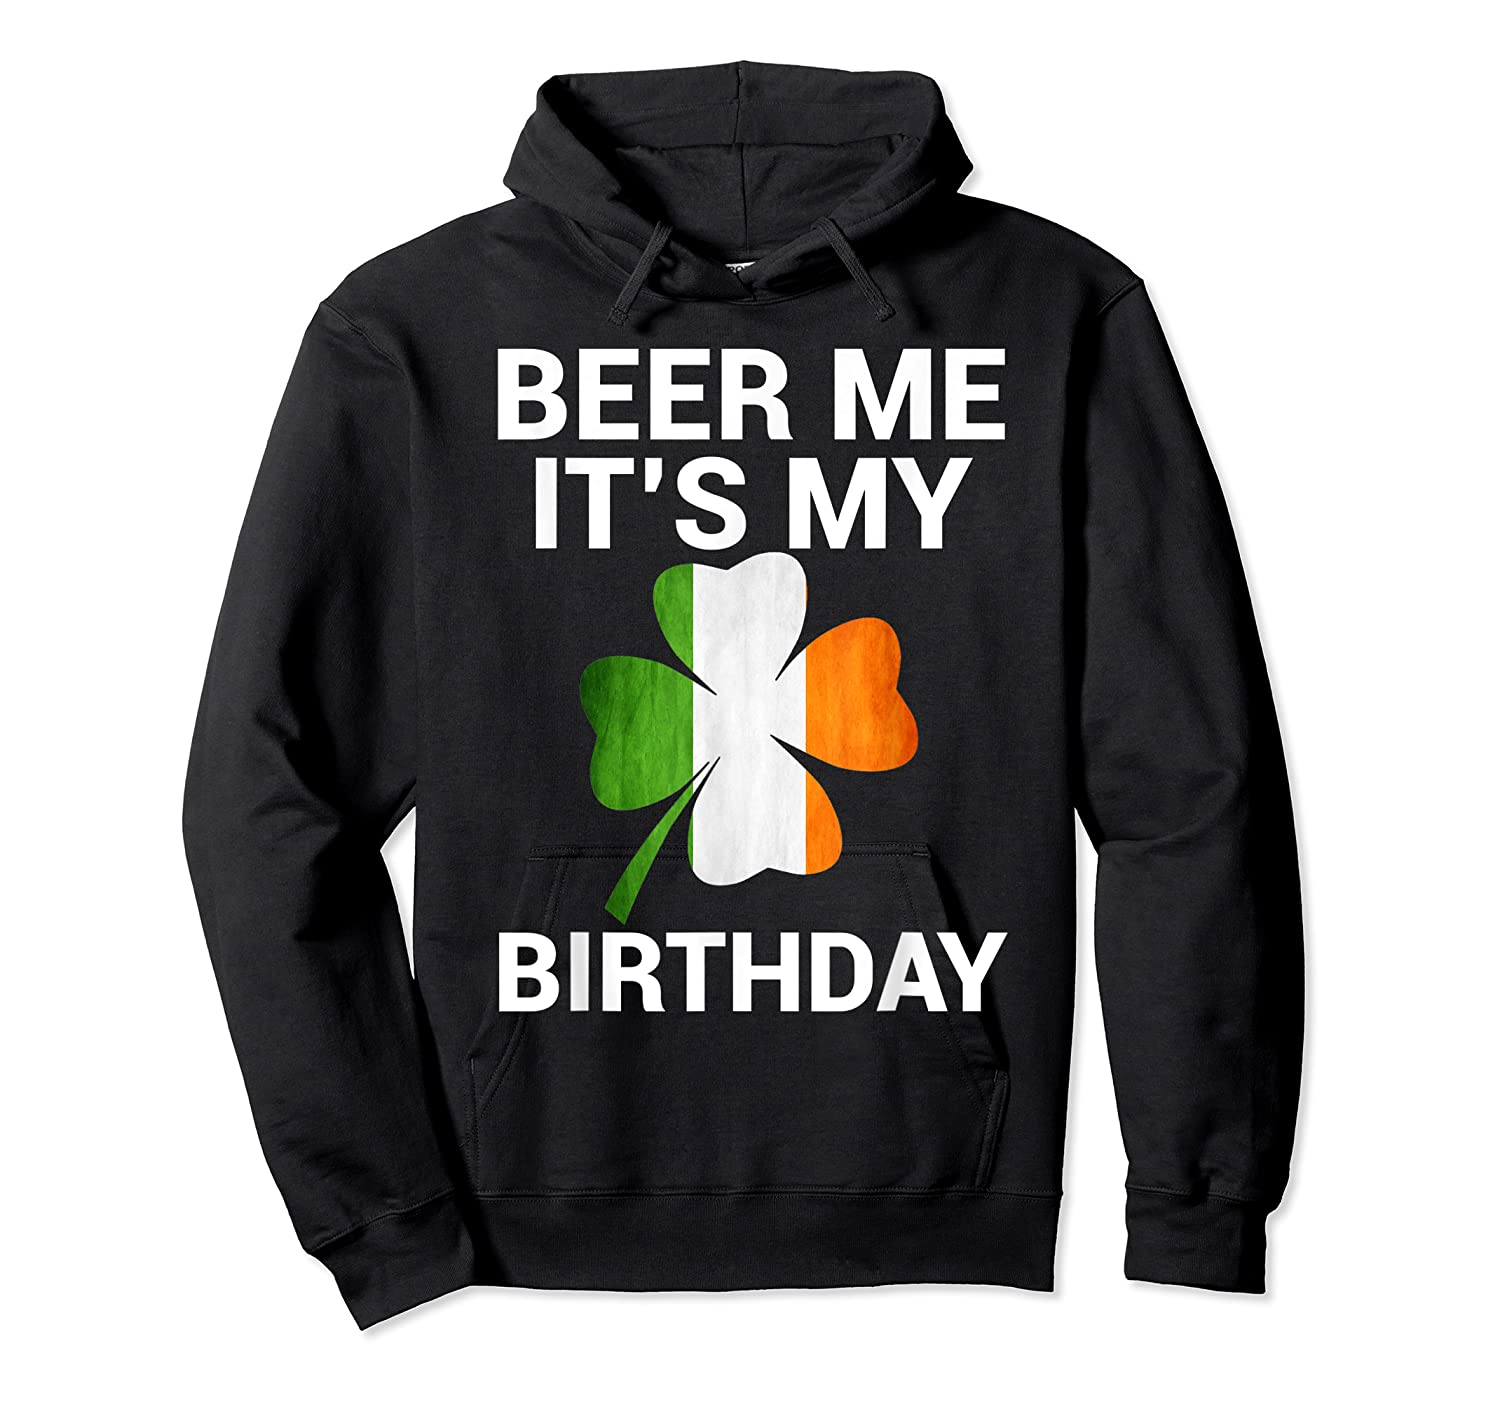 Beer Me It's My Birthday Ireland Flag Clover Gift Shirts Unisex Pullover Hoodie